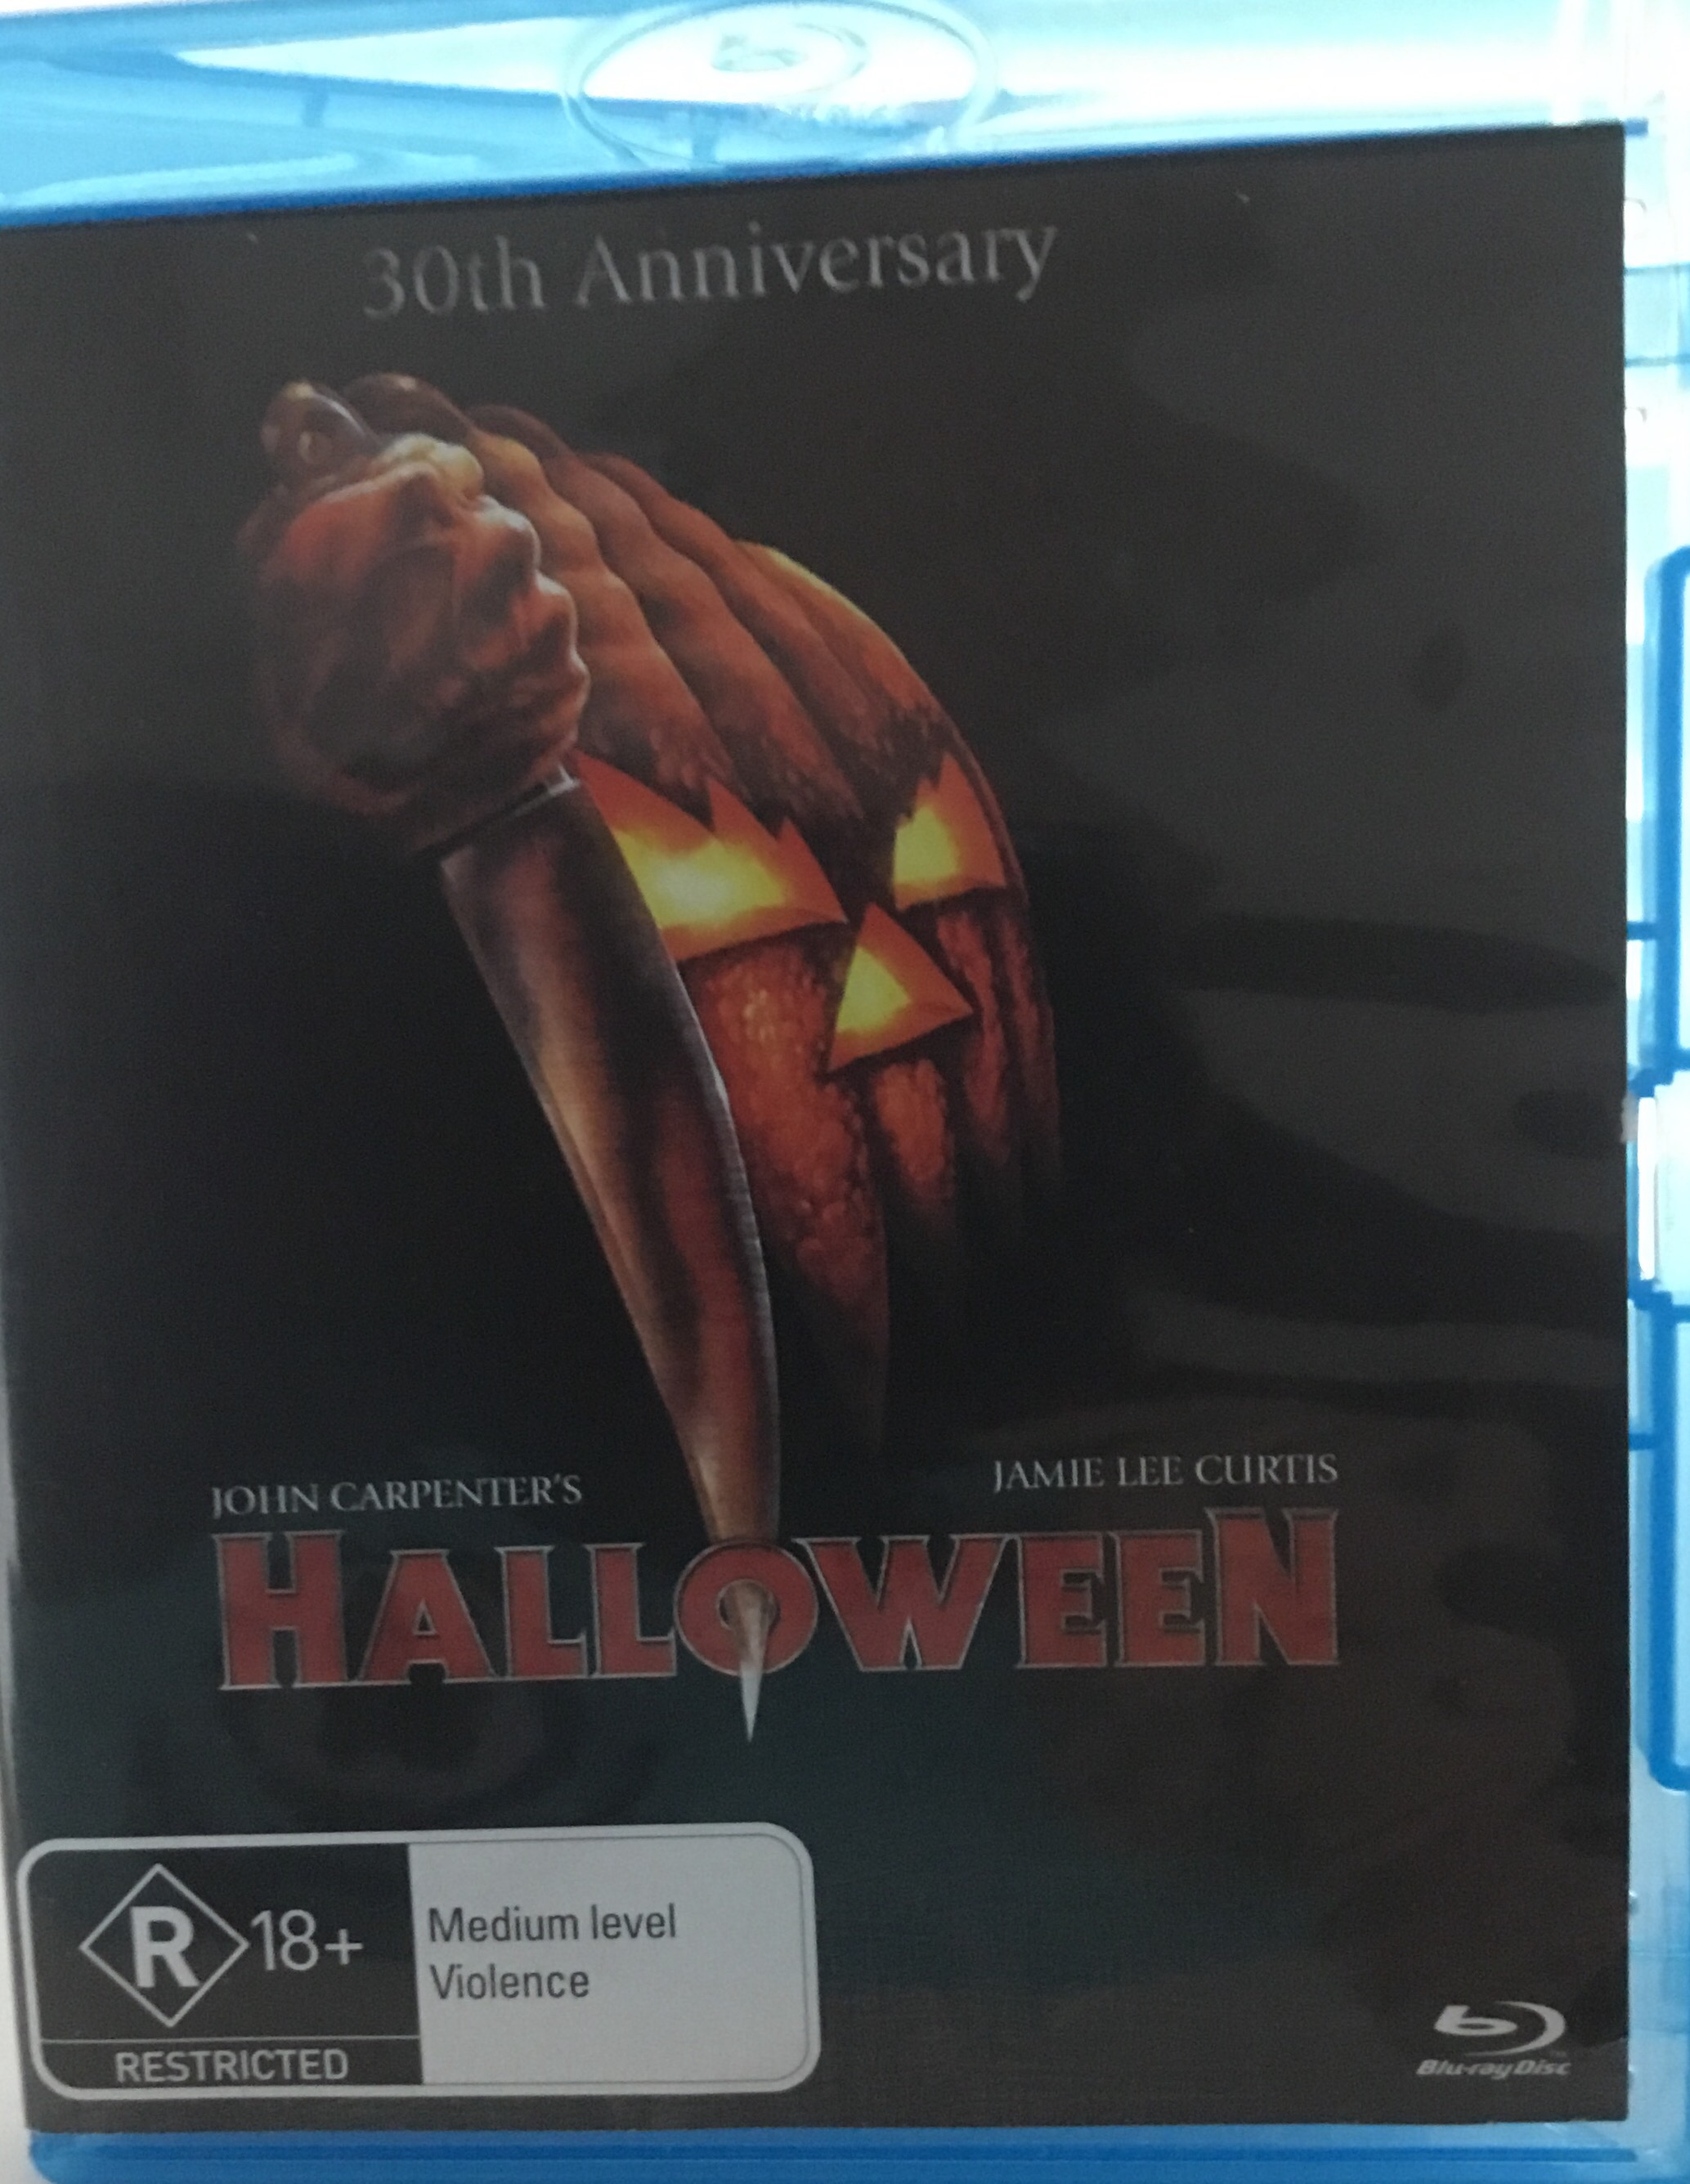 film one thing every serious horror fan must agree on is that halloween is our christmas the further away it goes from what it actually stands for